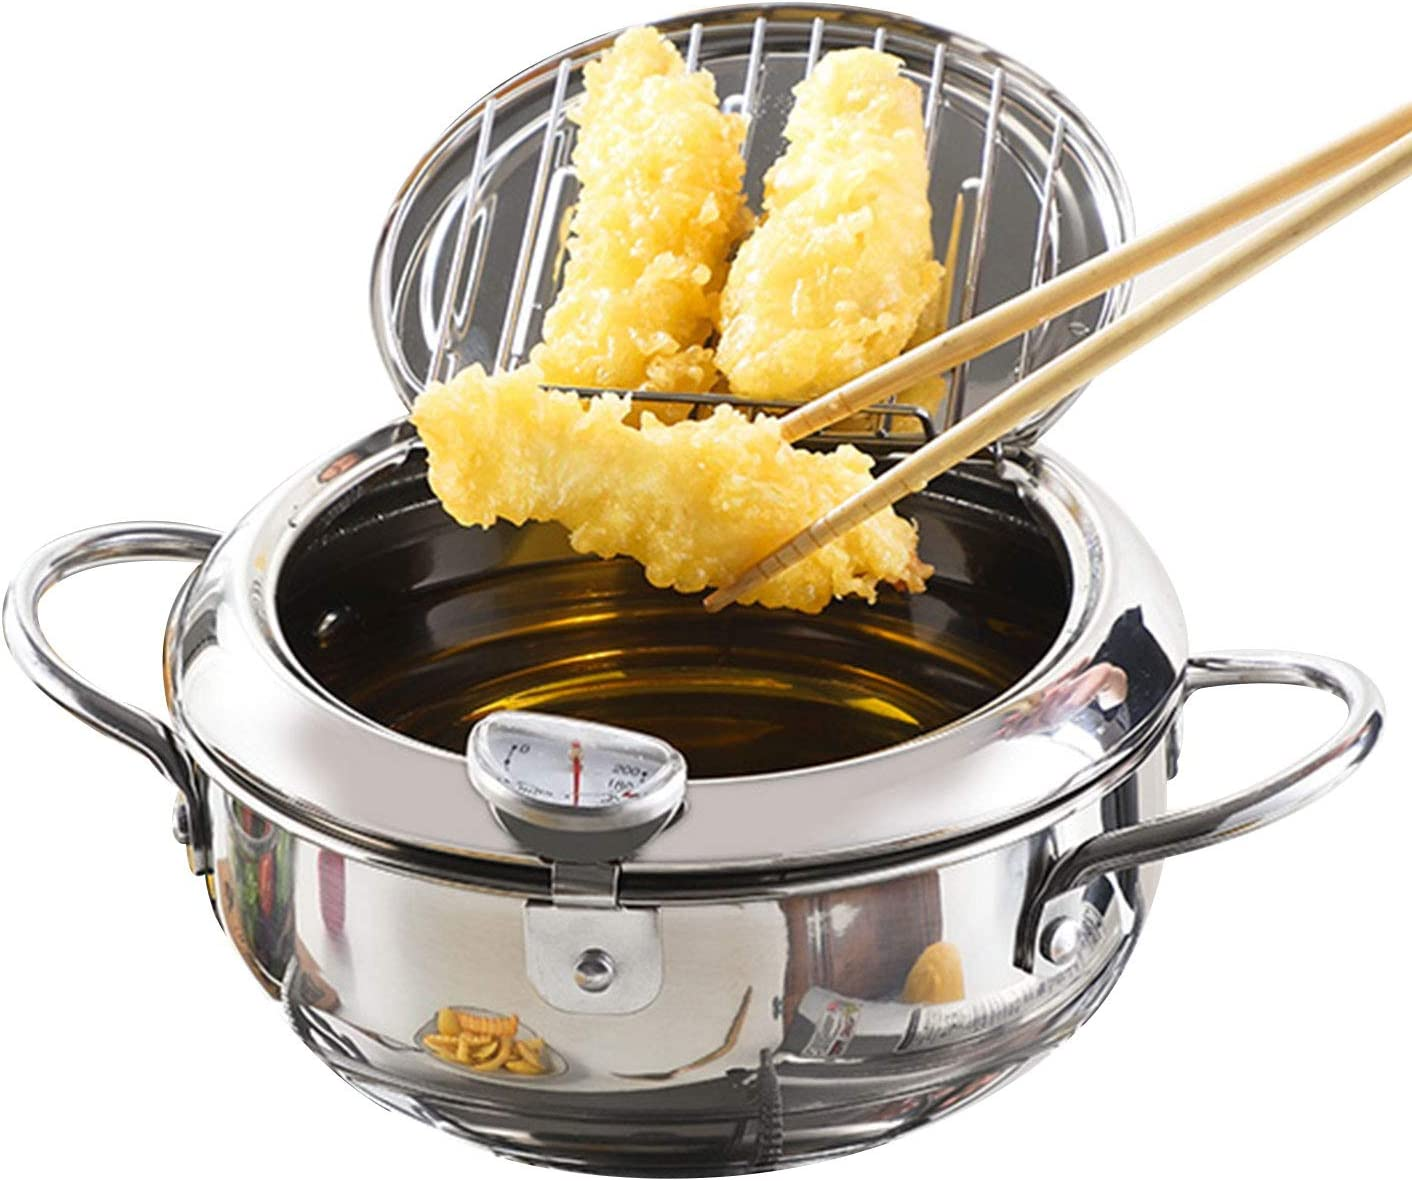 Stainless Steel Deep Frying Pot Japanese Style Deep Frying Pan Tempura Deep Fryer Pot with Thermometer and Oil Drip Drainer Rack